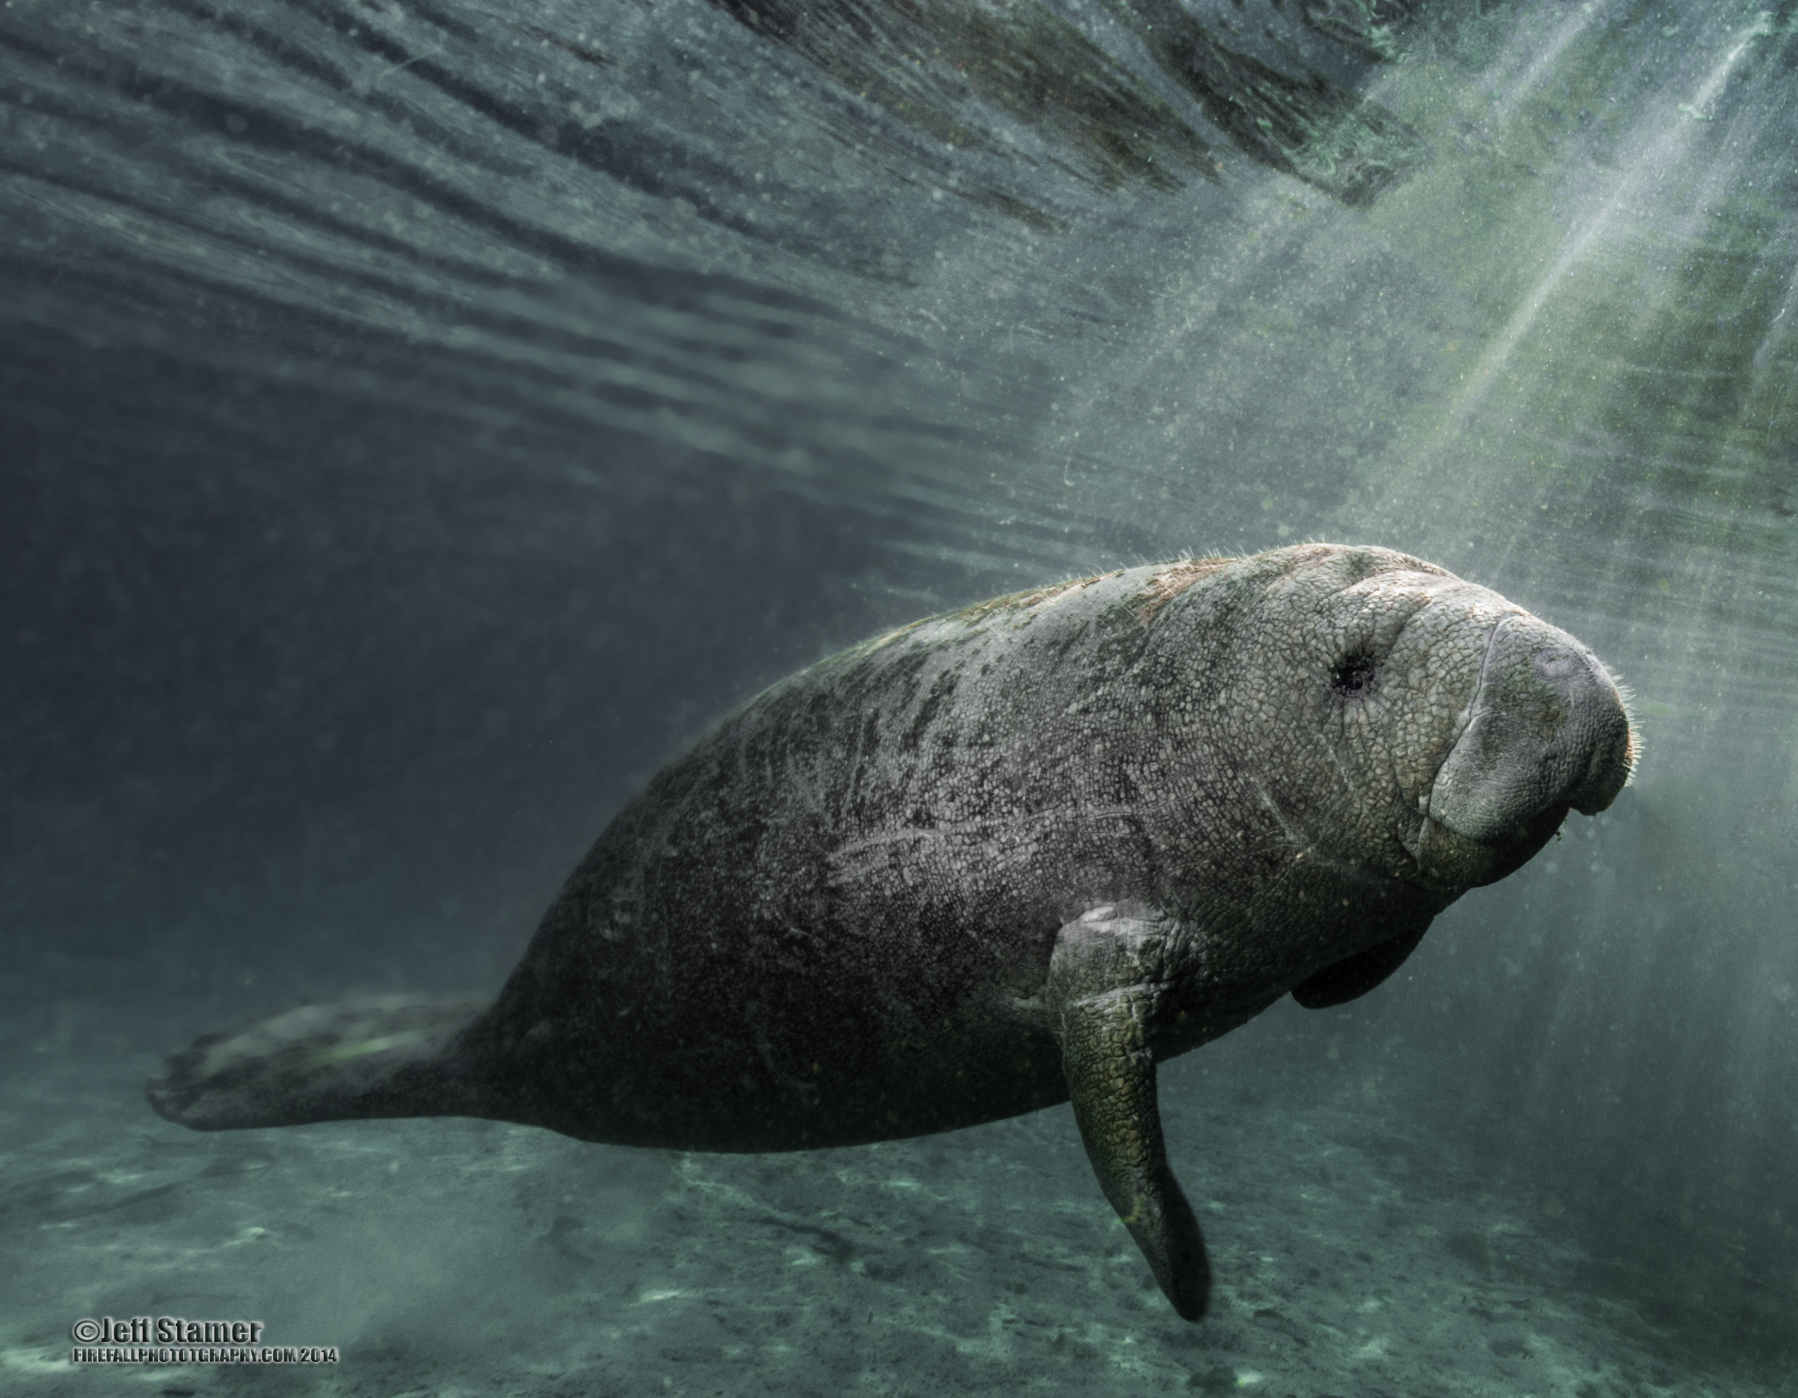 Manatee Photography: Tips and Guide